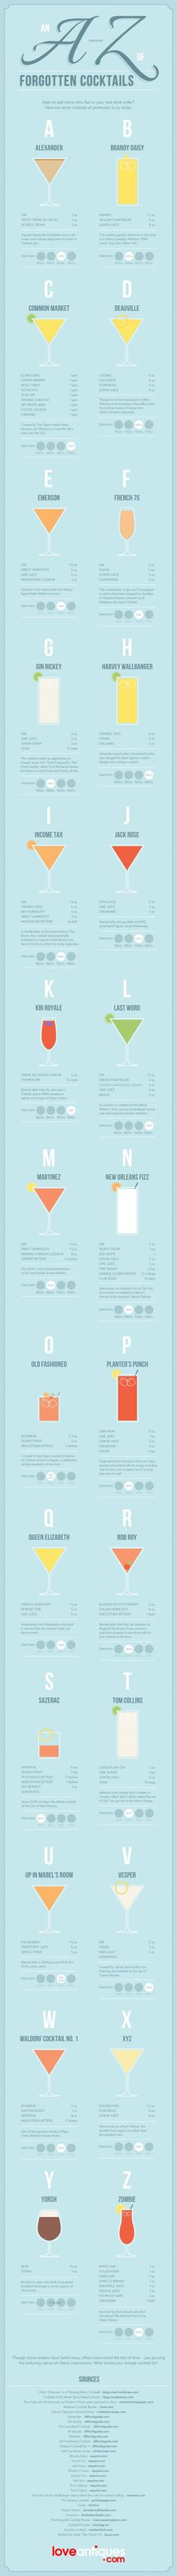 The cocktails of yesteryear were strong, delicious, and all-around classy. NeoMan Studios, a design agency, created an awesome infographic of some of the best retro cocktails that are worth bringing back, from A to Z. They also gave a history of when these drinks were popular and fun facts about each cocktail.